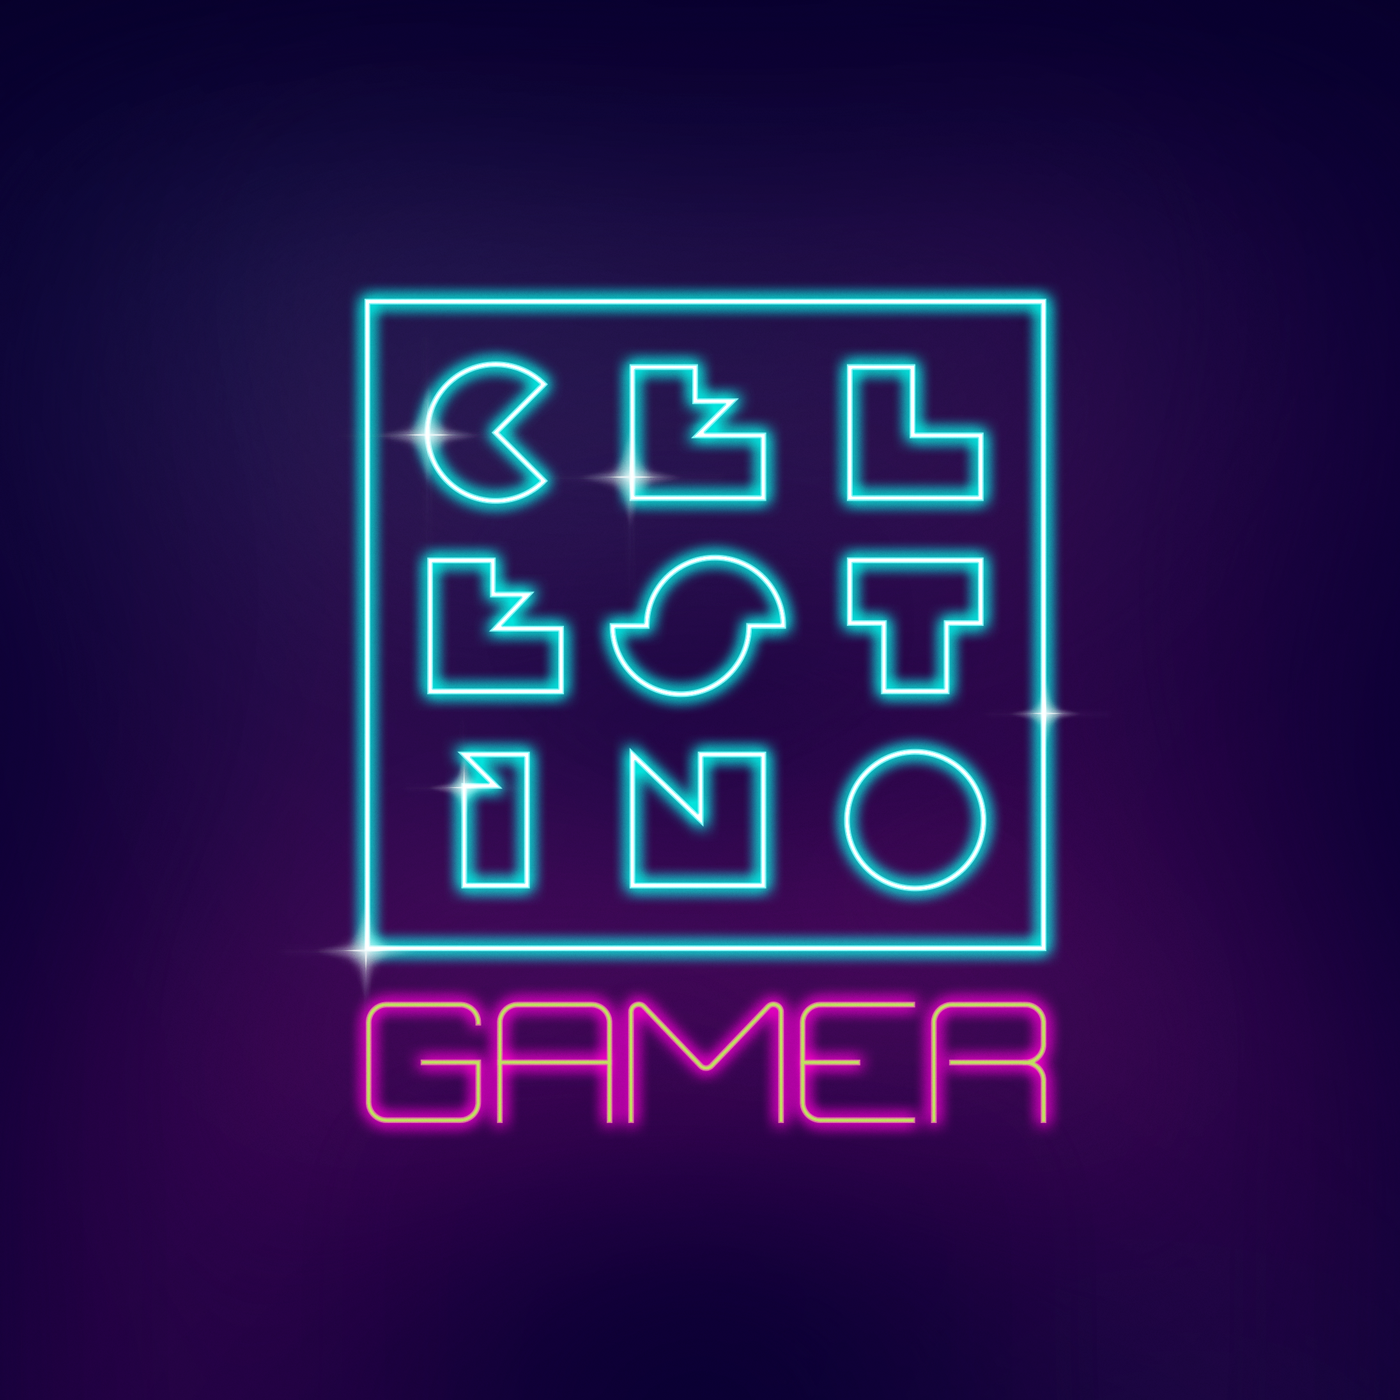 typography_lettering_andre_levy_zhion_vector_dj_celestino_gamer_neon_retro_80s.png